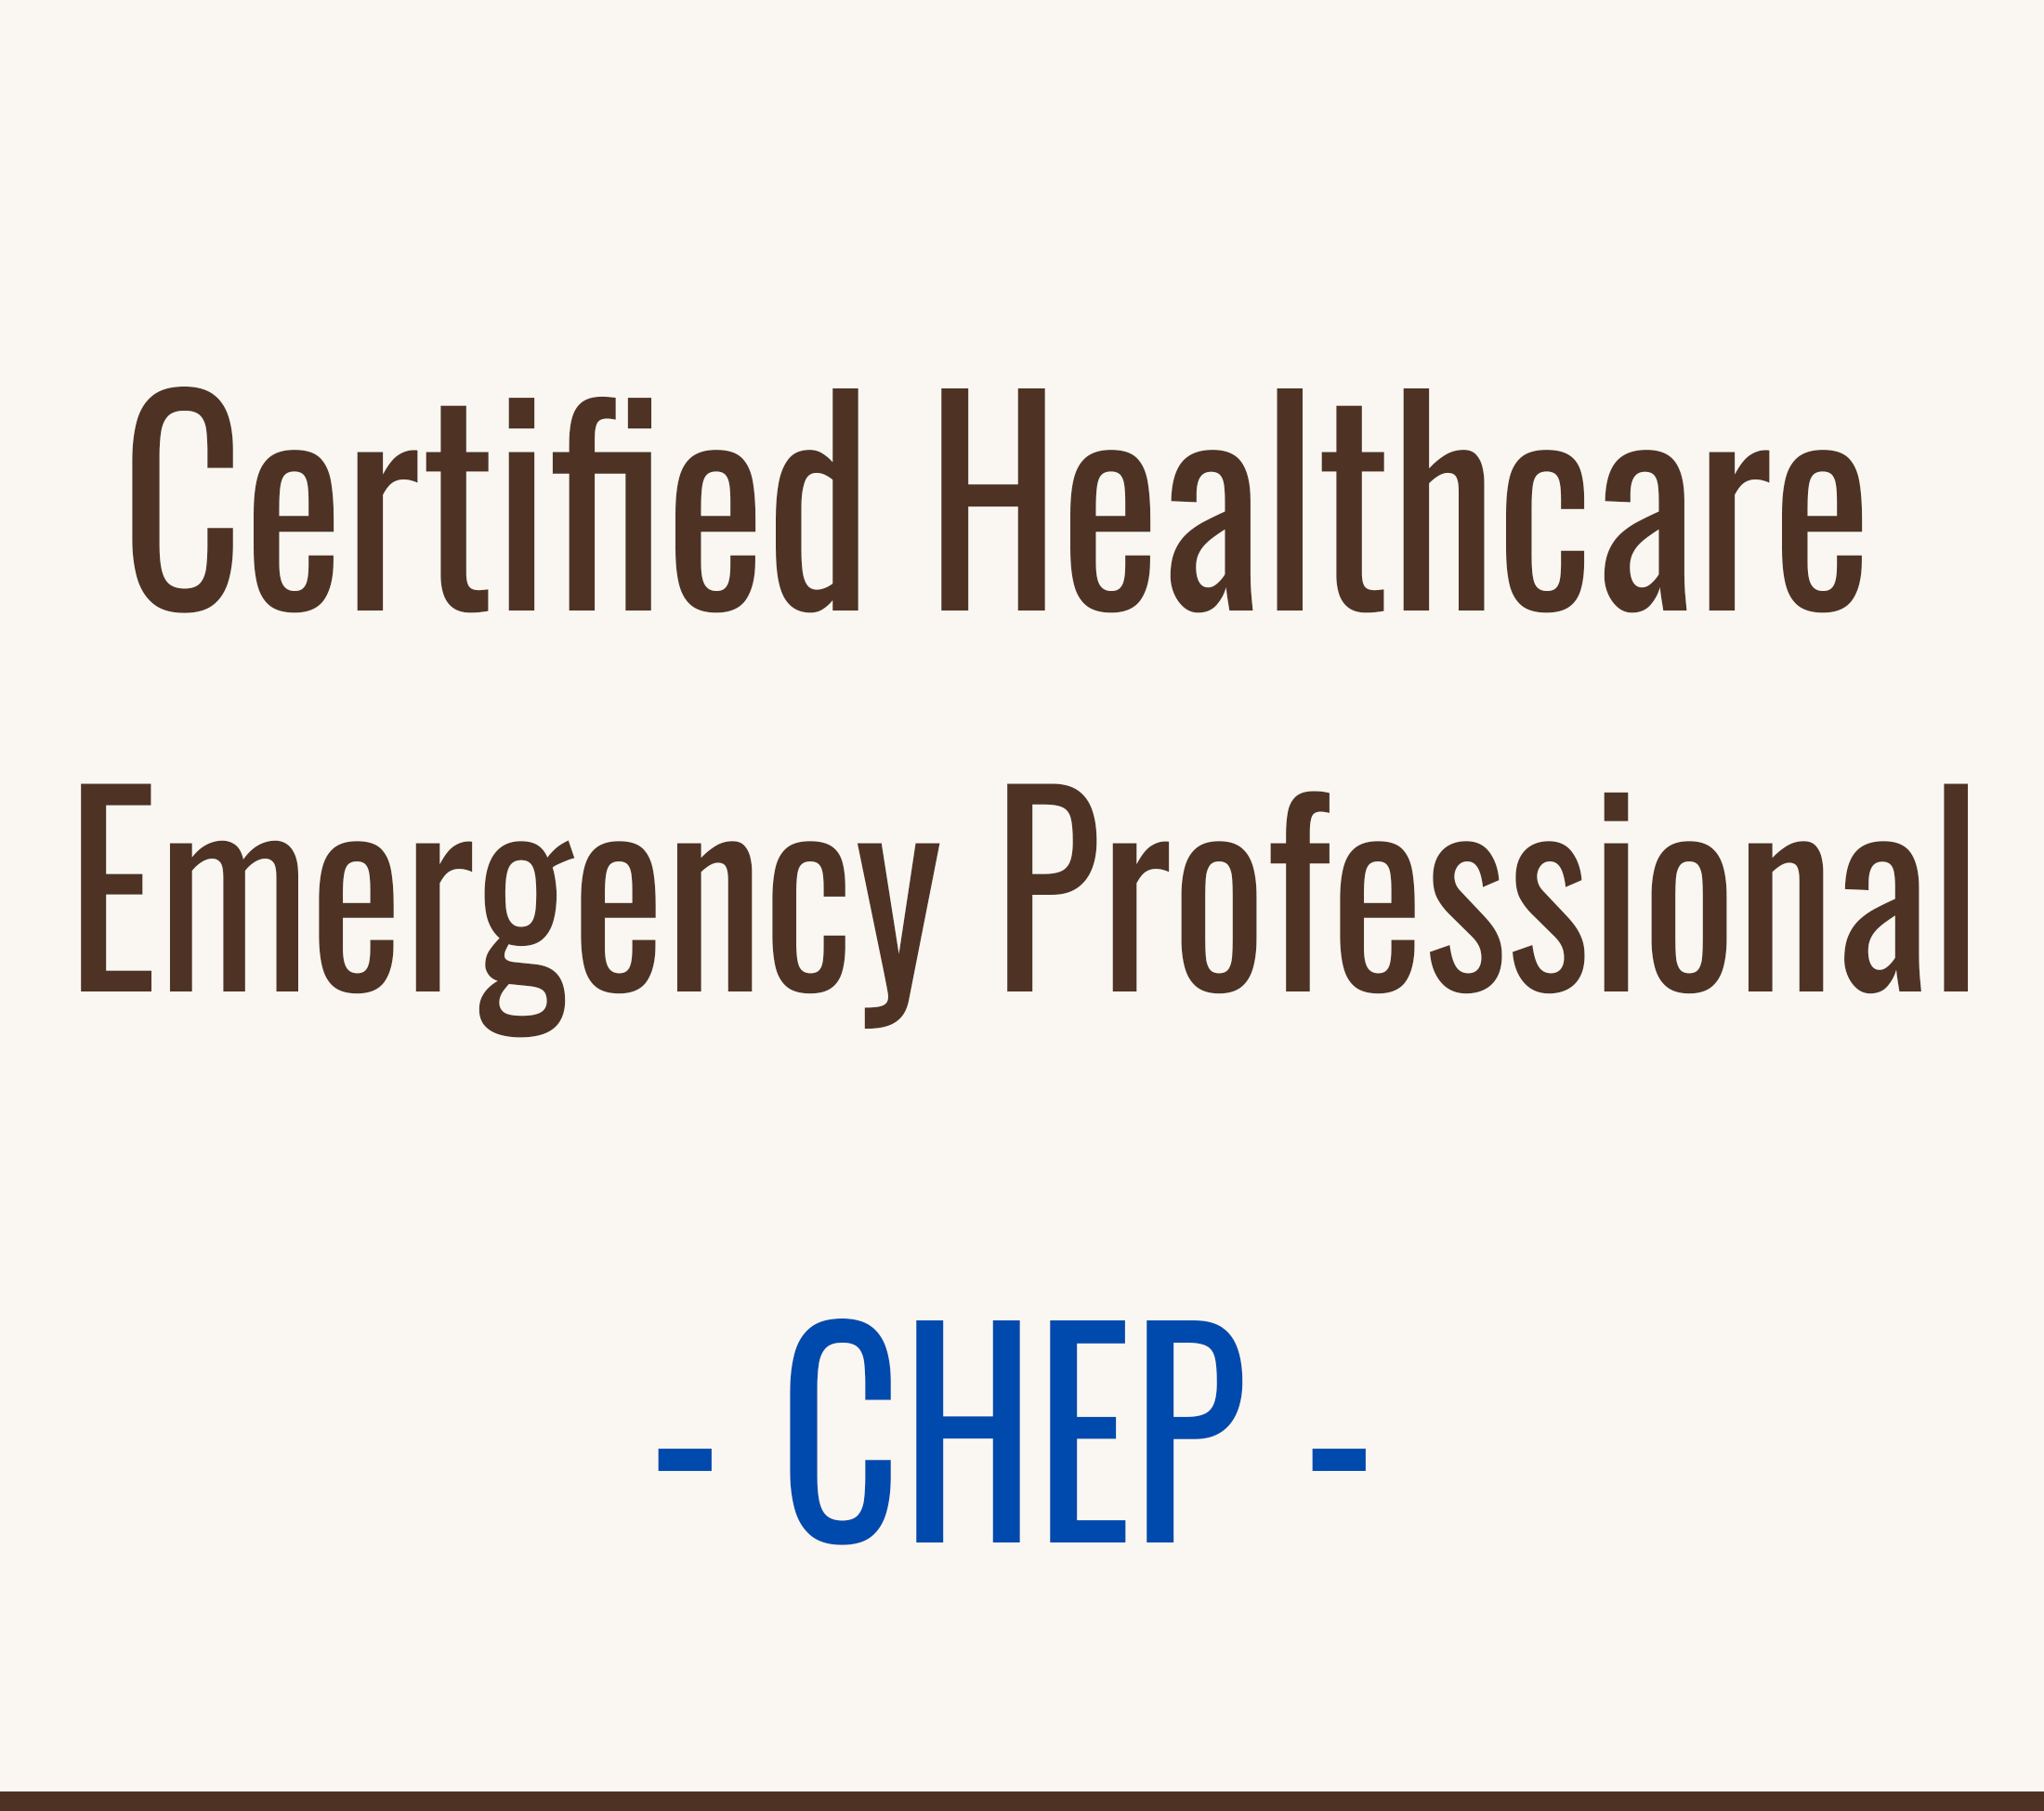 Certified Healthcare Emergency Professional